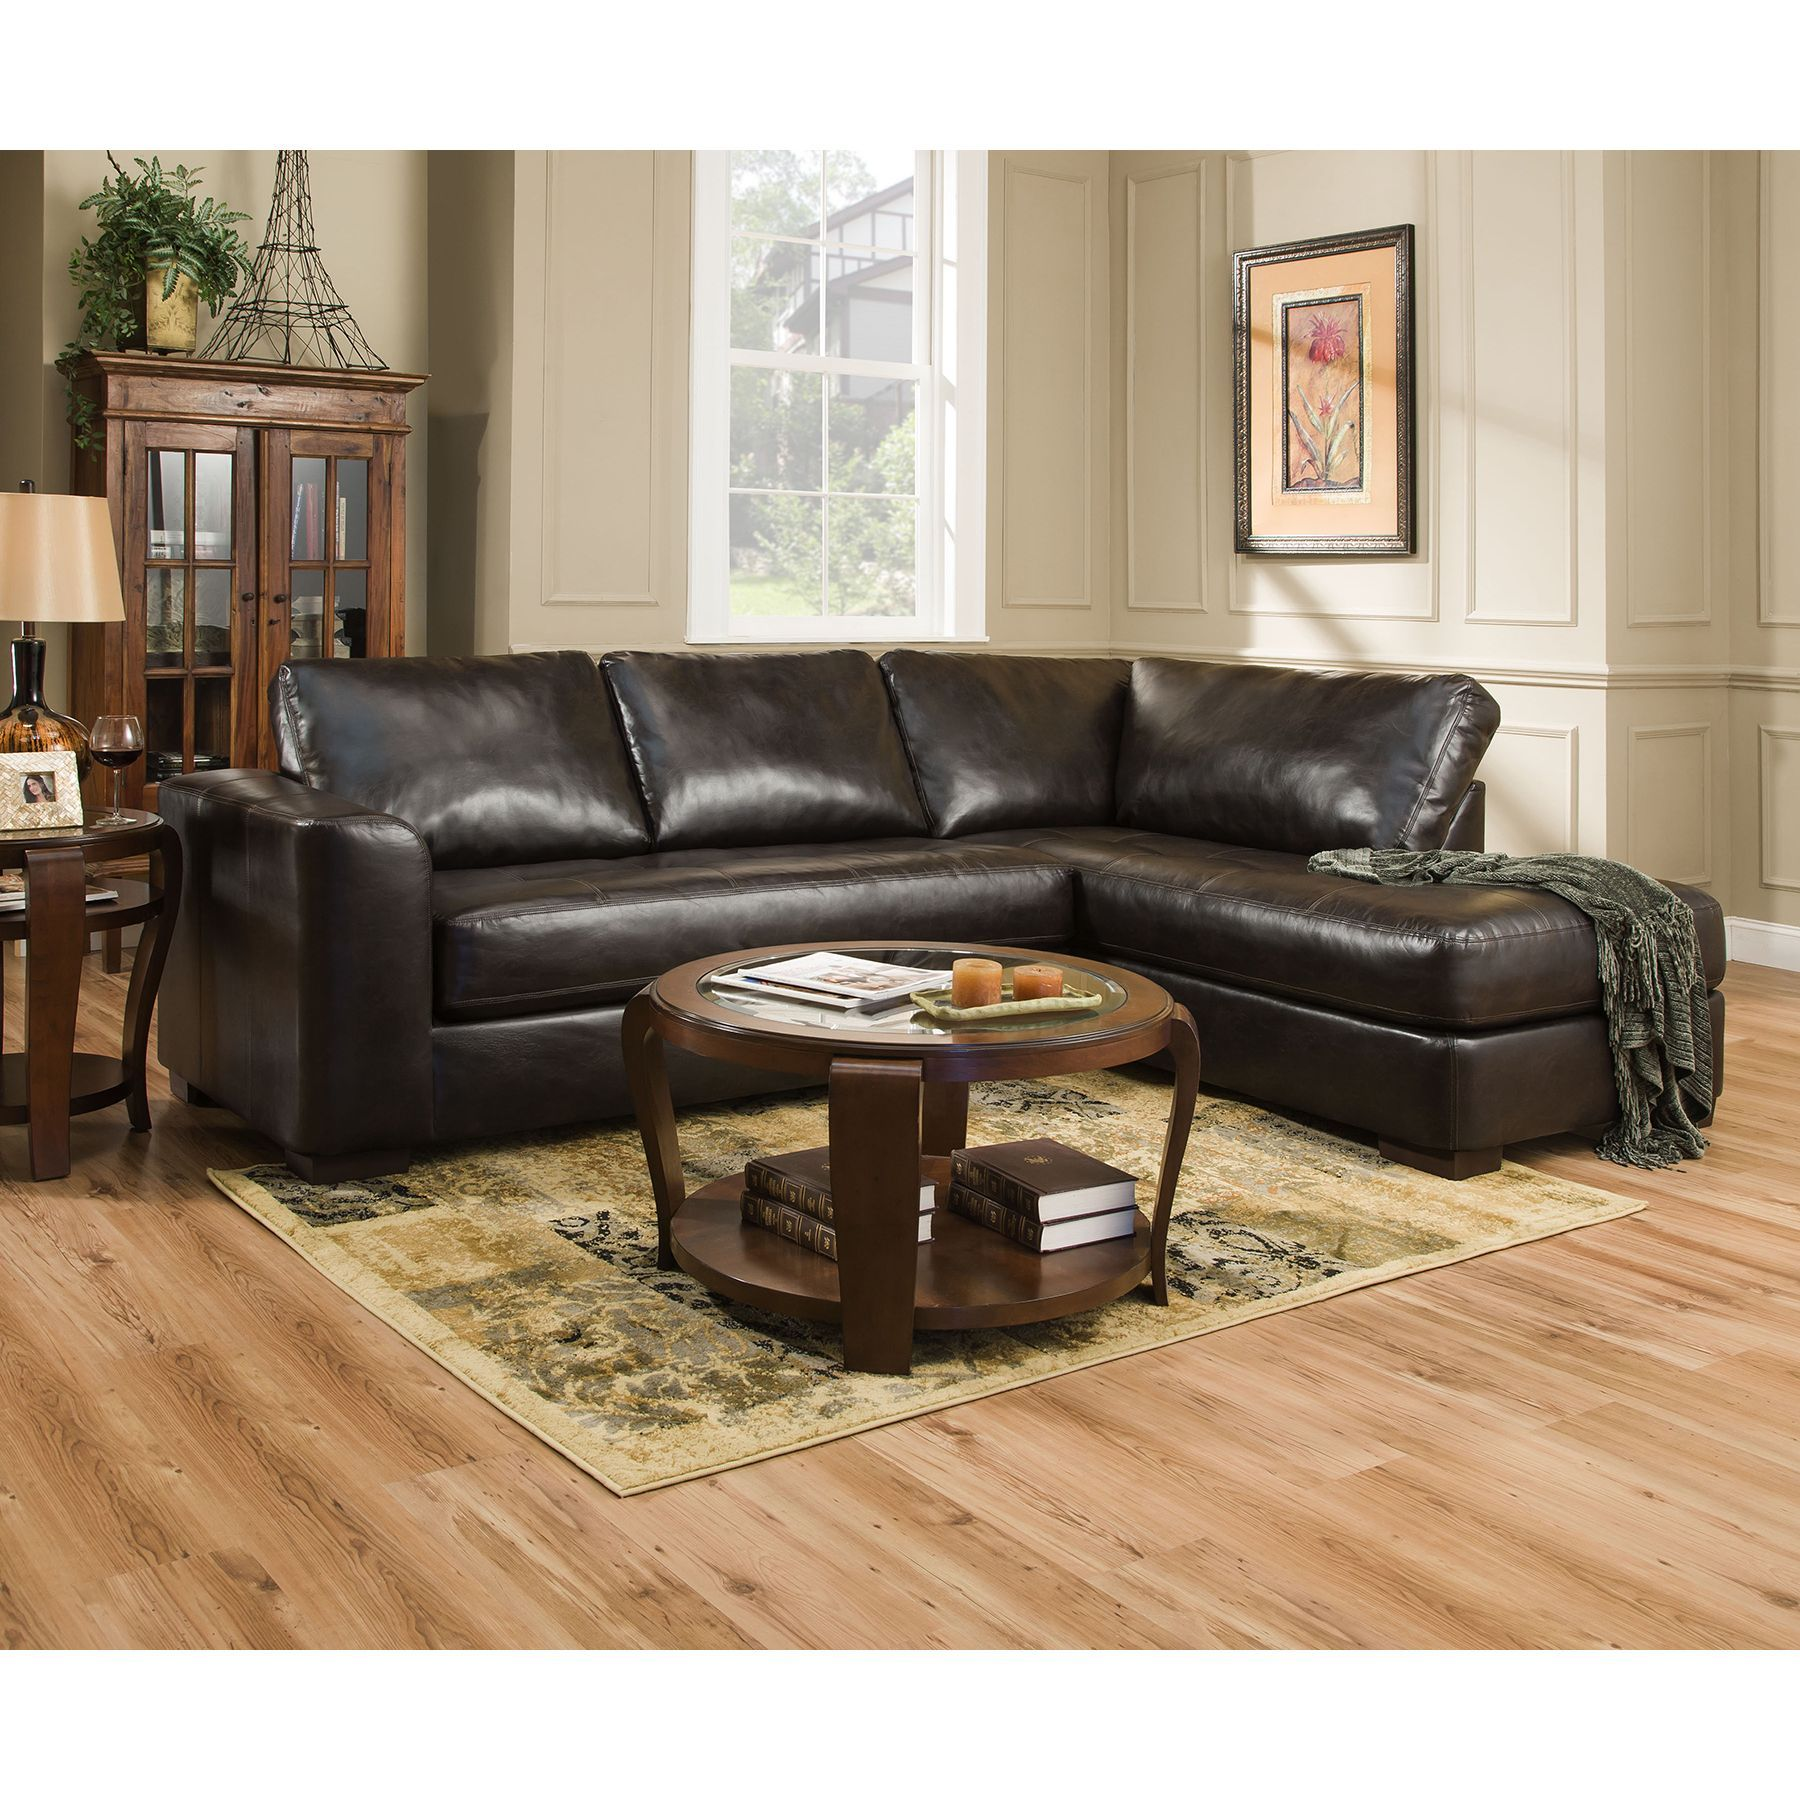 Simmons Upholstery Lucky Espresso Sectional and Matching Ottoman (4558-Lucky Brown Sectional-Ottoman) (Bonded Leather)  sc 1 st  Pinterest : simmons bonded leather sectional - Sectionals, Sofas & Couches